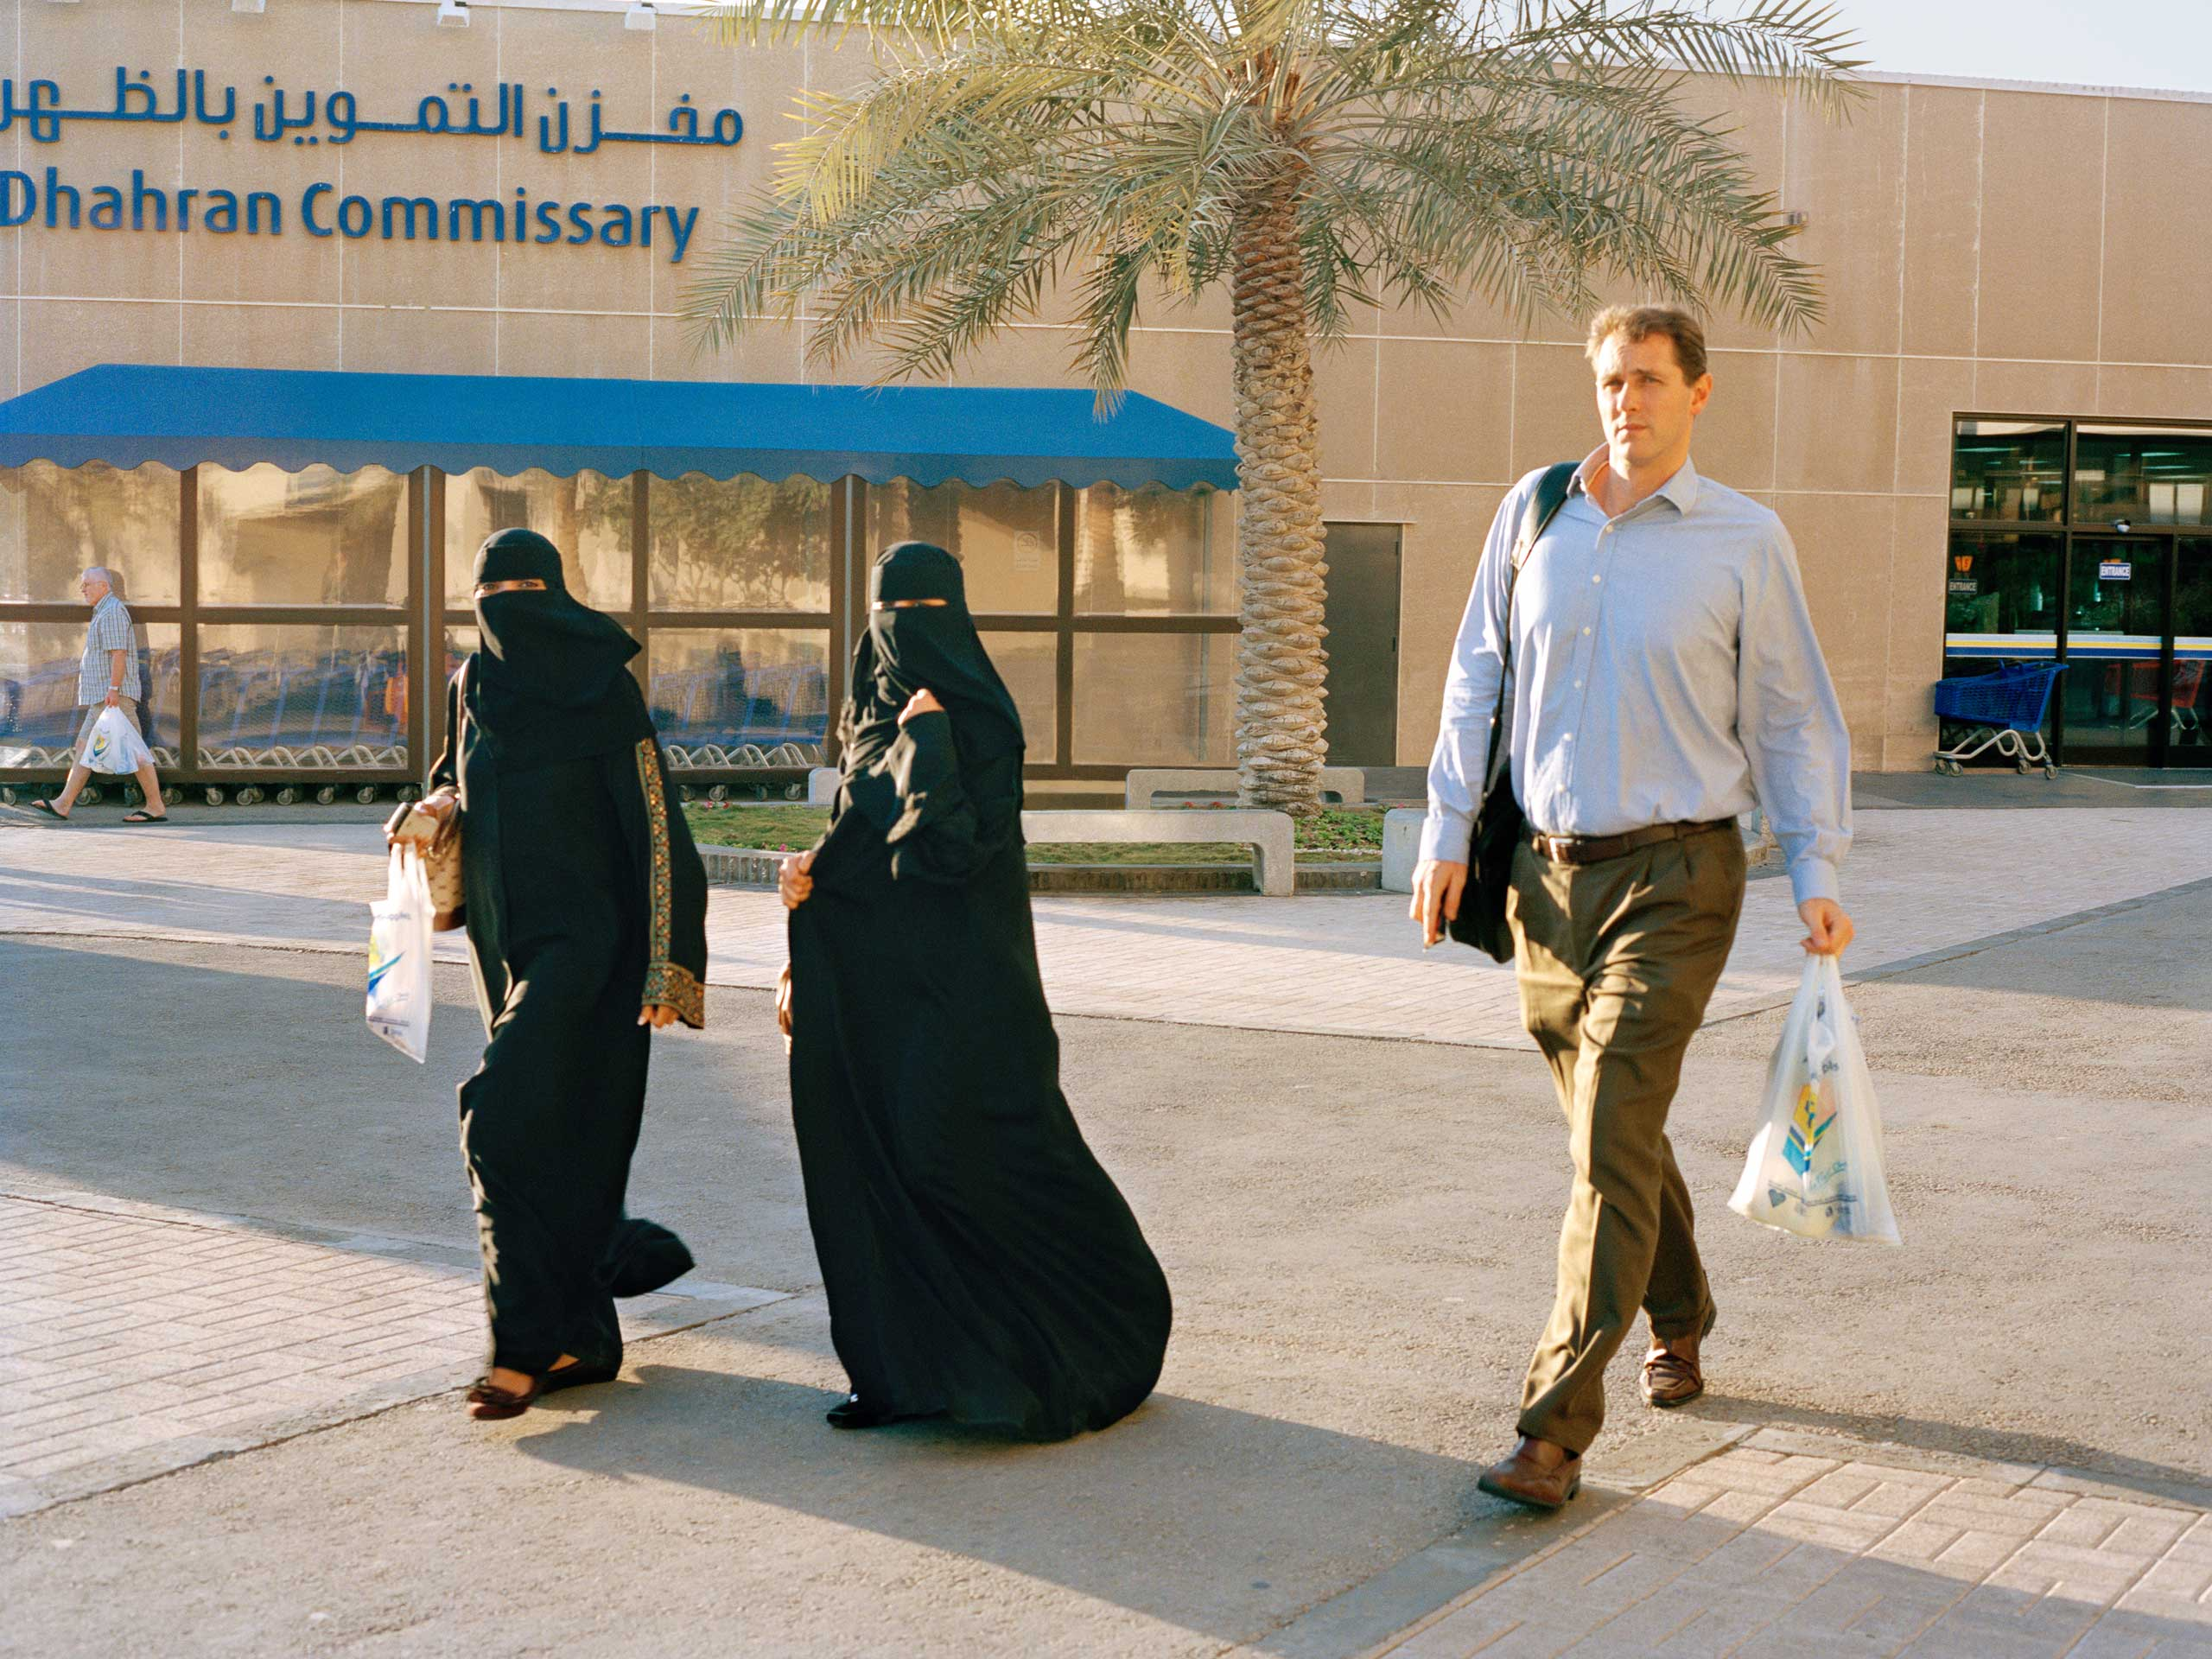 Dhahran Commissary is located near the main office area. Generally, it gets busy around 4pm when people leave work.